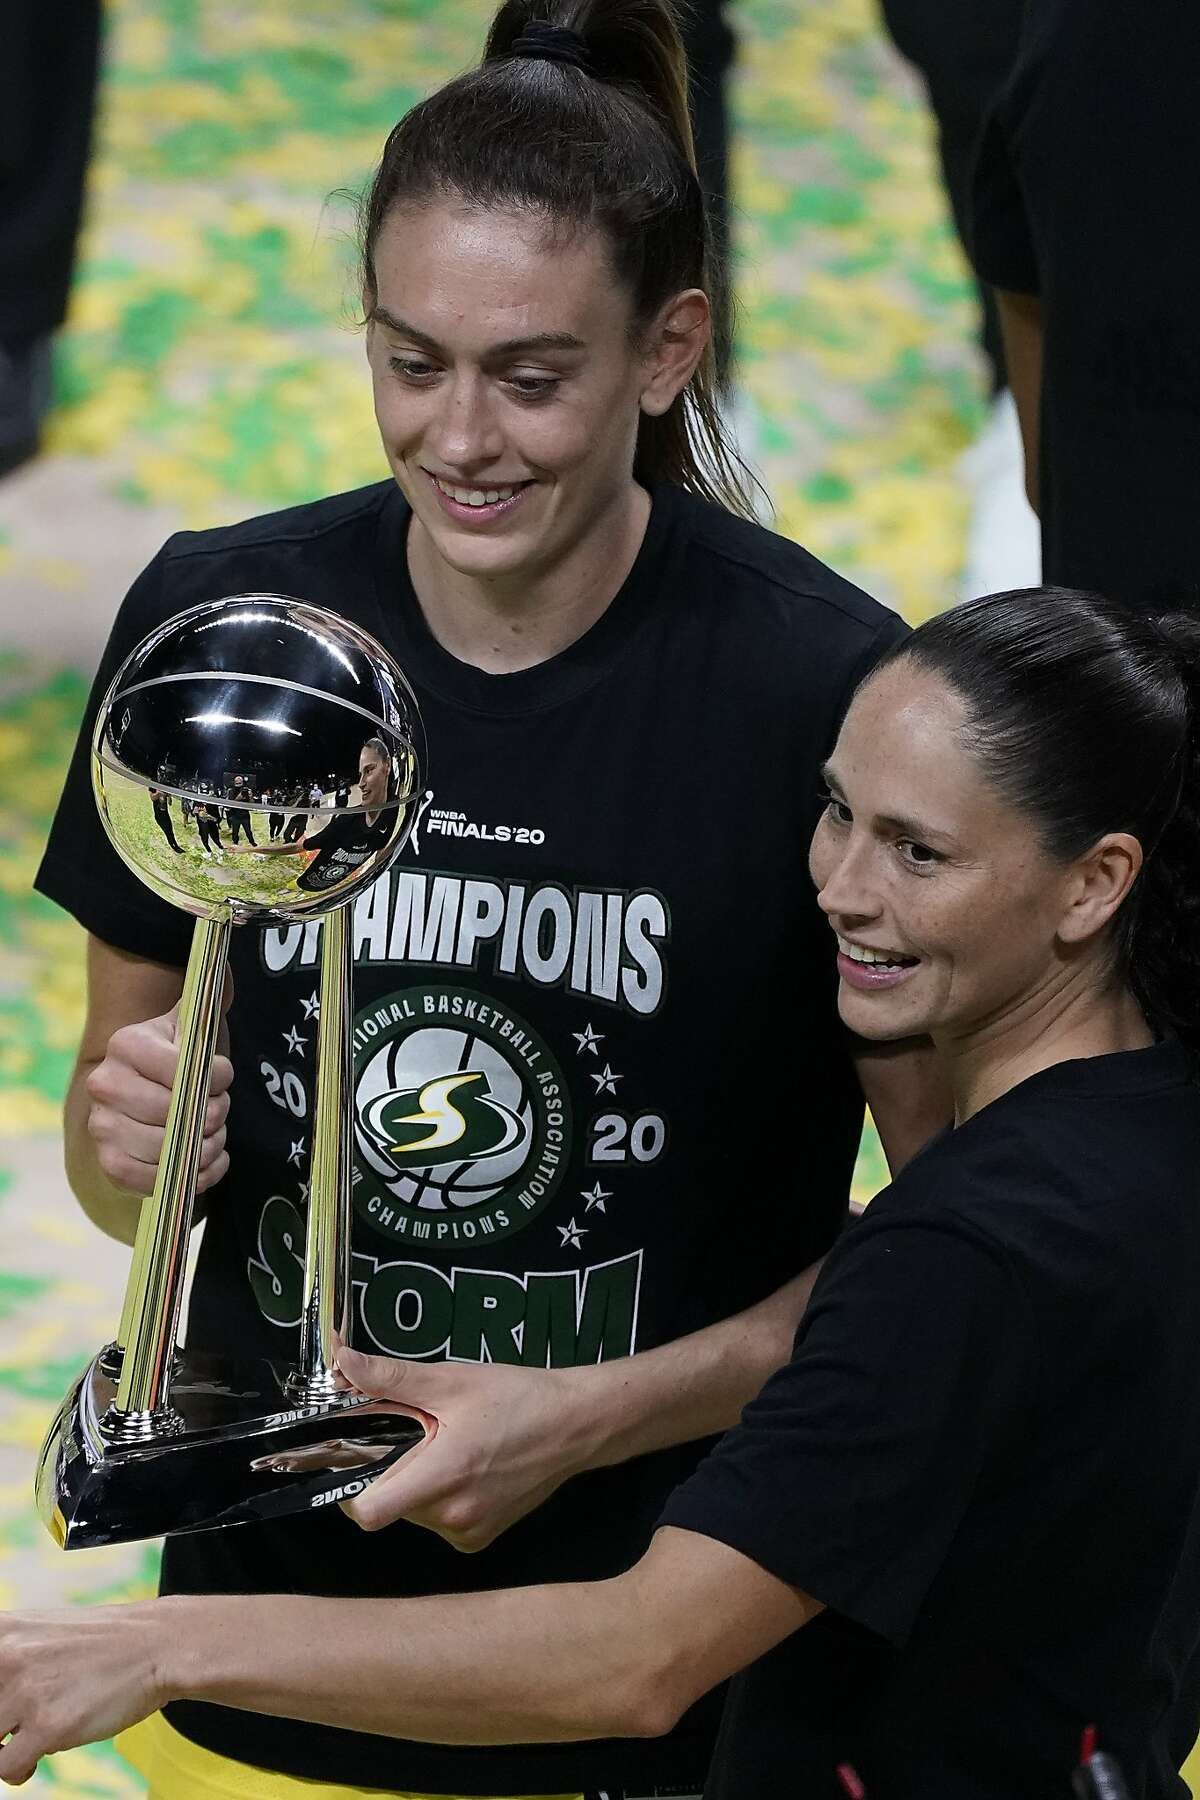 Seattle Storm forward Breanna Stewart, left, and Sue Bird celebrate after the team won basketball's WNBA Championship Tuesday, Oct. 6, 2020, in Bradenton, Fla. The STorm defeated the Las Vegas Aces to win the title. (AP Photo/Chris O'Meara)